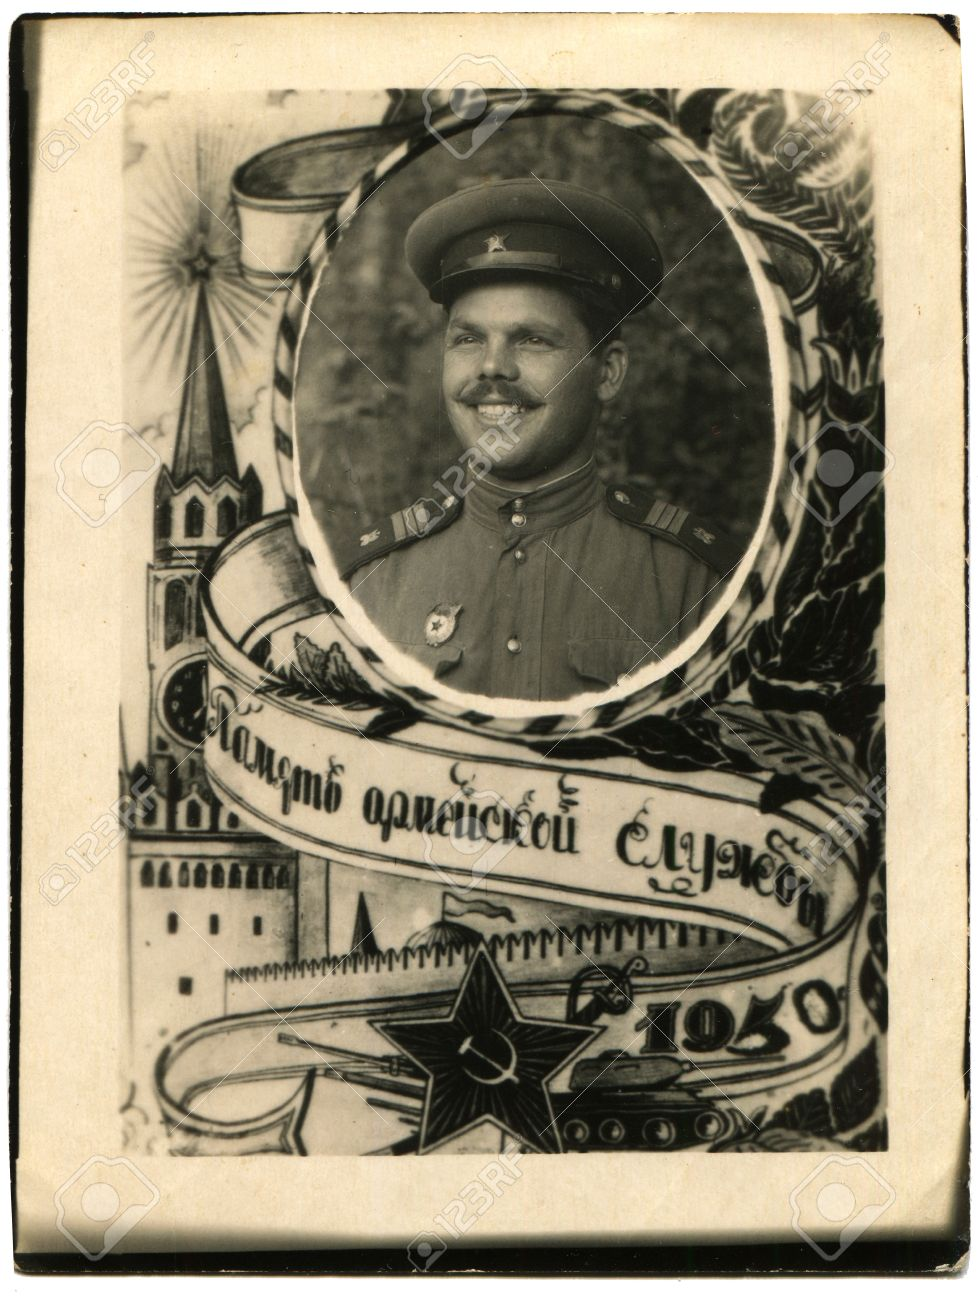 14467152-USSR-CIRCA-1950-Portrait-of-the-Soviet-Army-sergeant-in-the--Stock-Photo.jpg